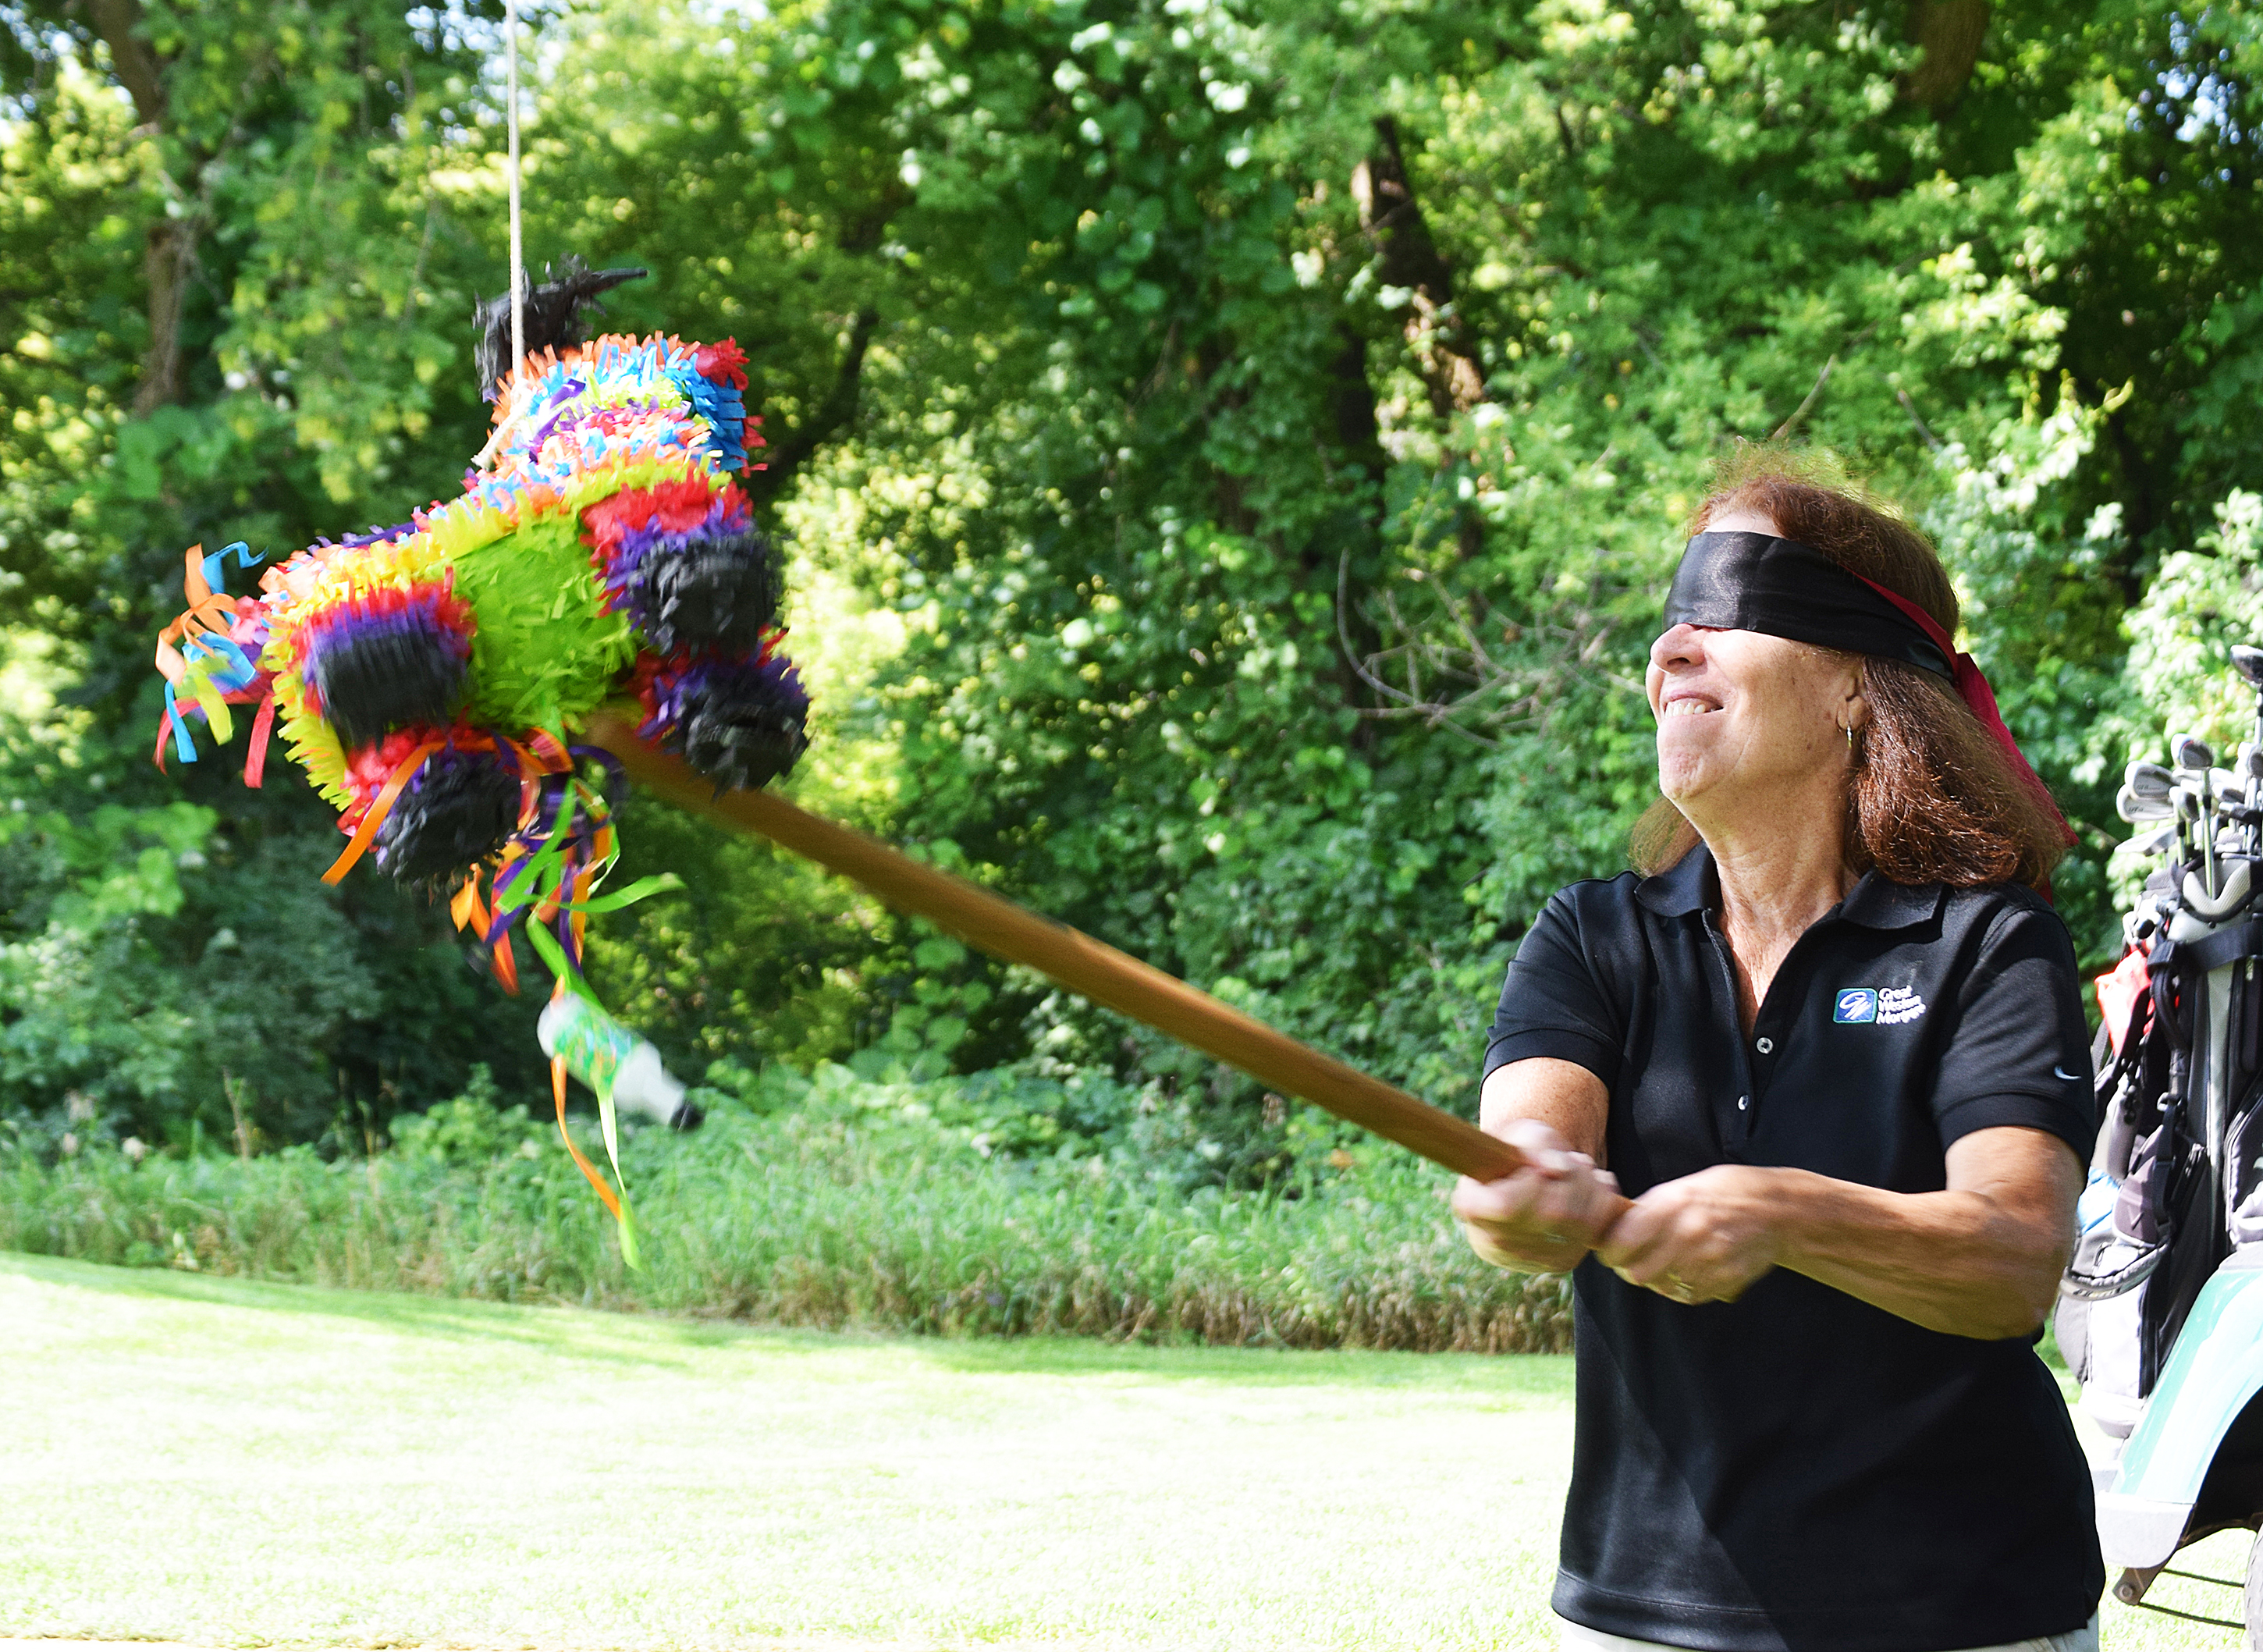 "Brandon Valley Chamber of Commerce took their annual golf tournament ""south of the border"" this year, giving the Aug. 2 event a Mexican fiesta theme. Cheryl Erickson of Great Western Bank takes a whack at the pinata, which was one of a variety of fun games the approximate 120 golfers took part in on the links of the Brandon Municipal Golf Course.<span class=""Apple-converted-space""> <strong>Jill Meier/BV Journal</strong></span>*/"